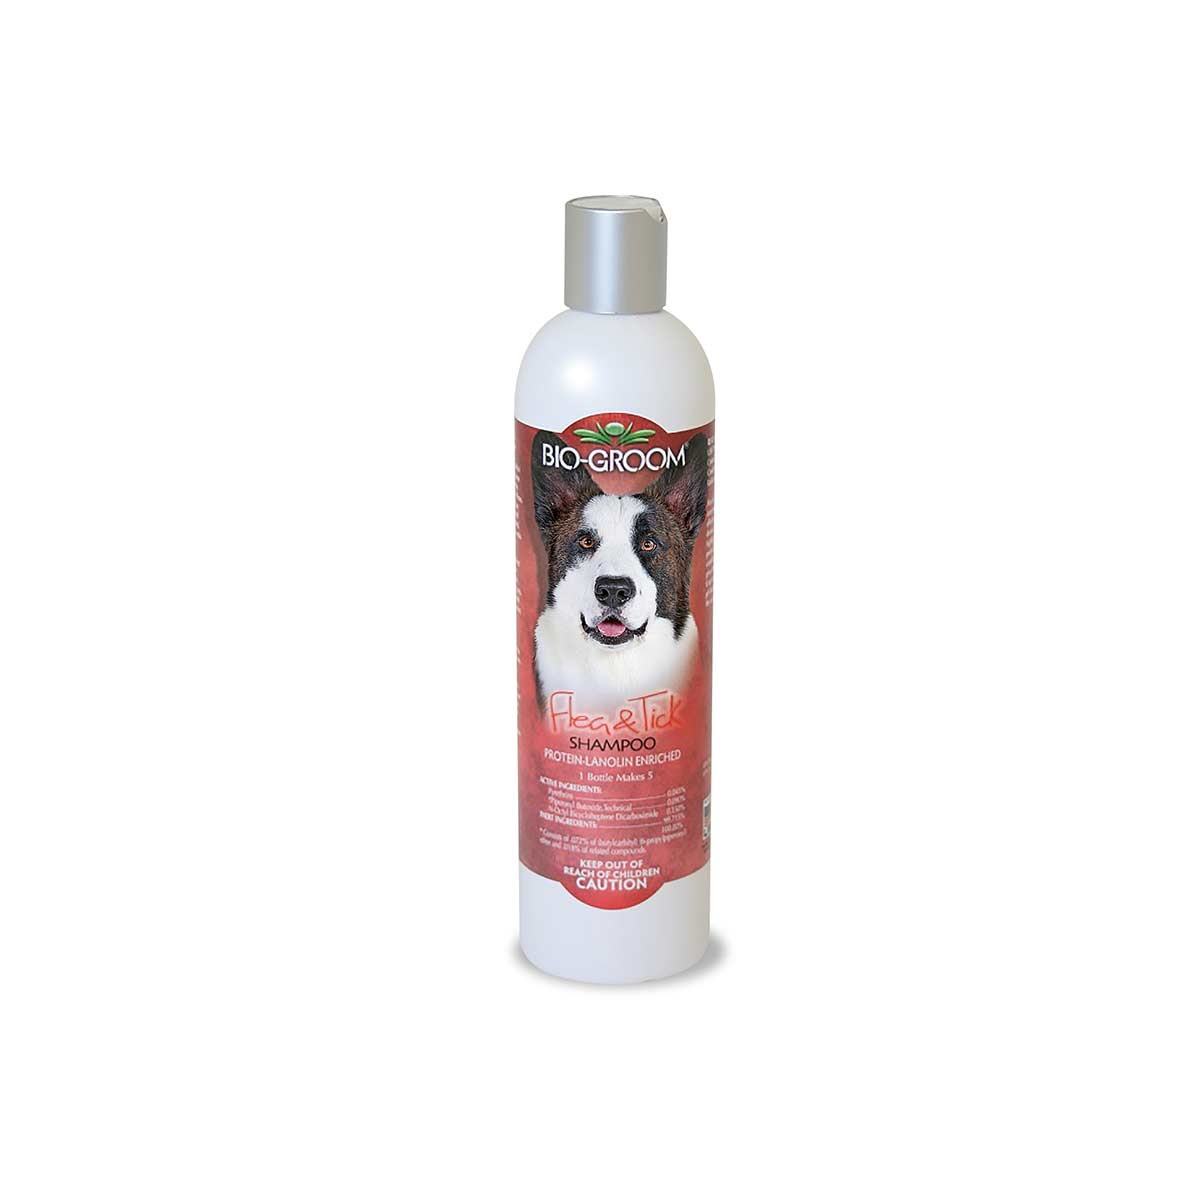 Bio-Groom Flea and Tick Dog Shampoo 12 Ounce 4:1